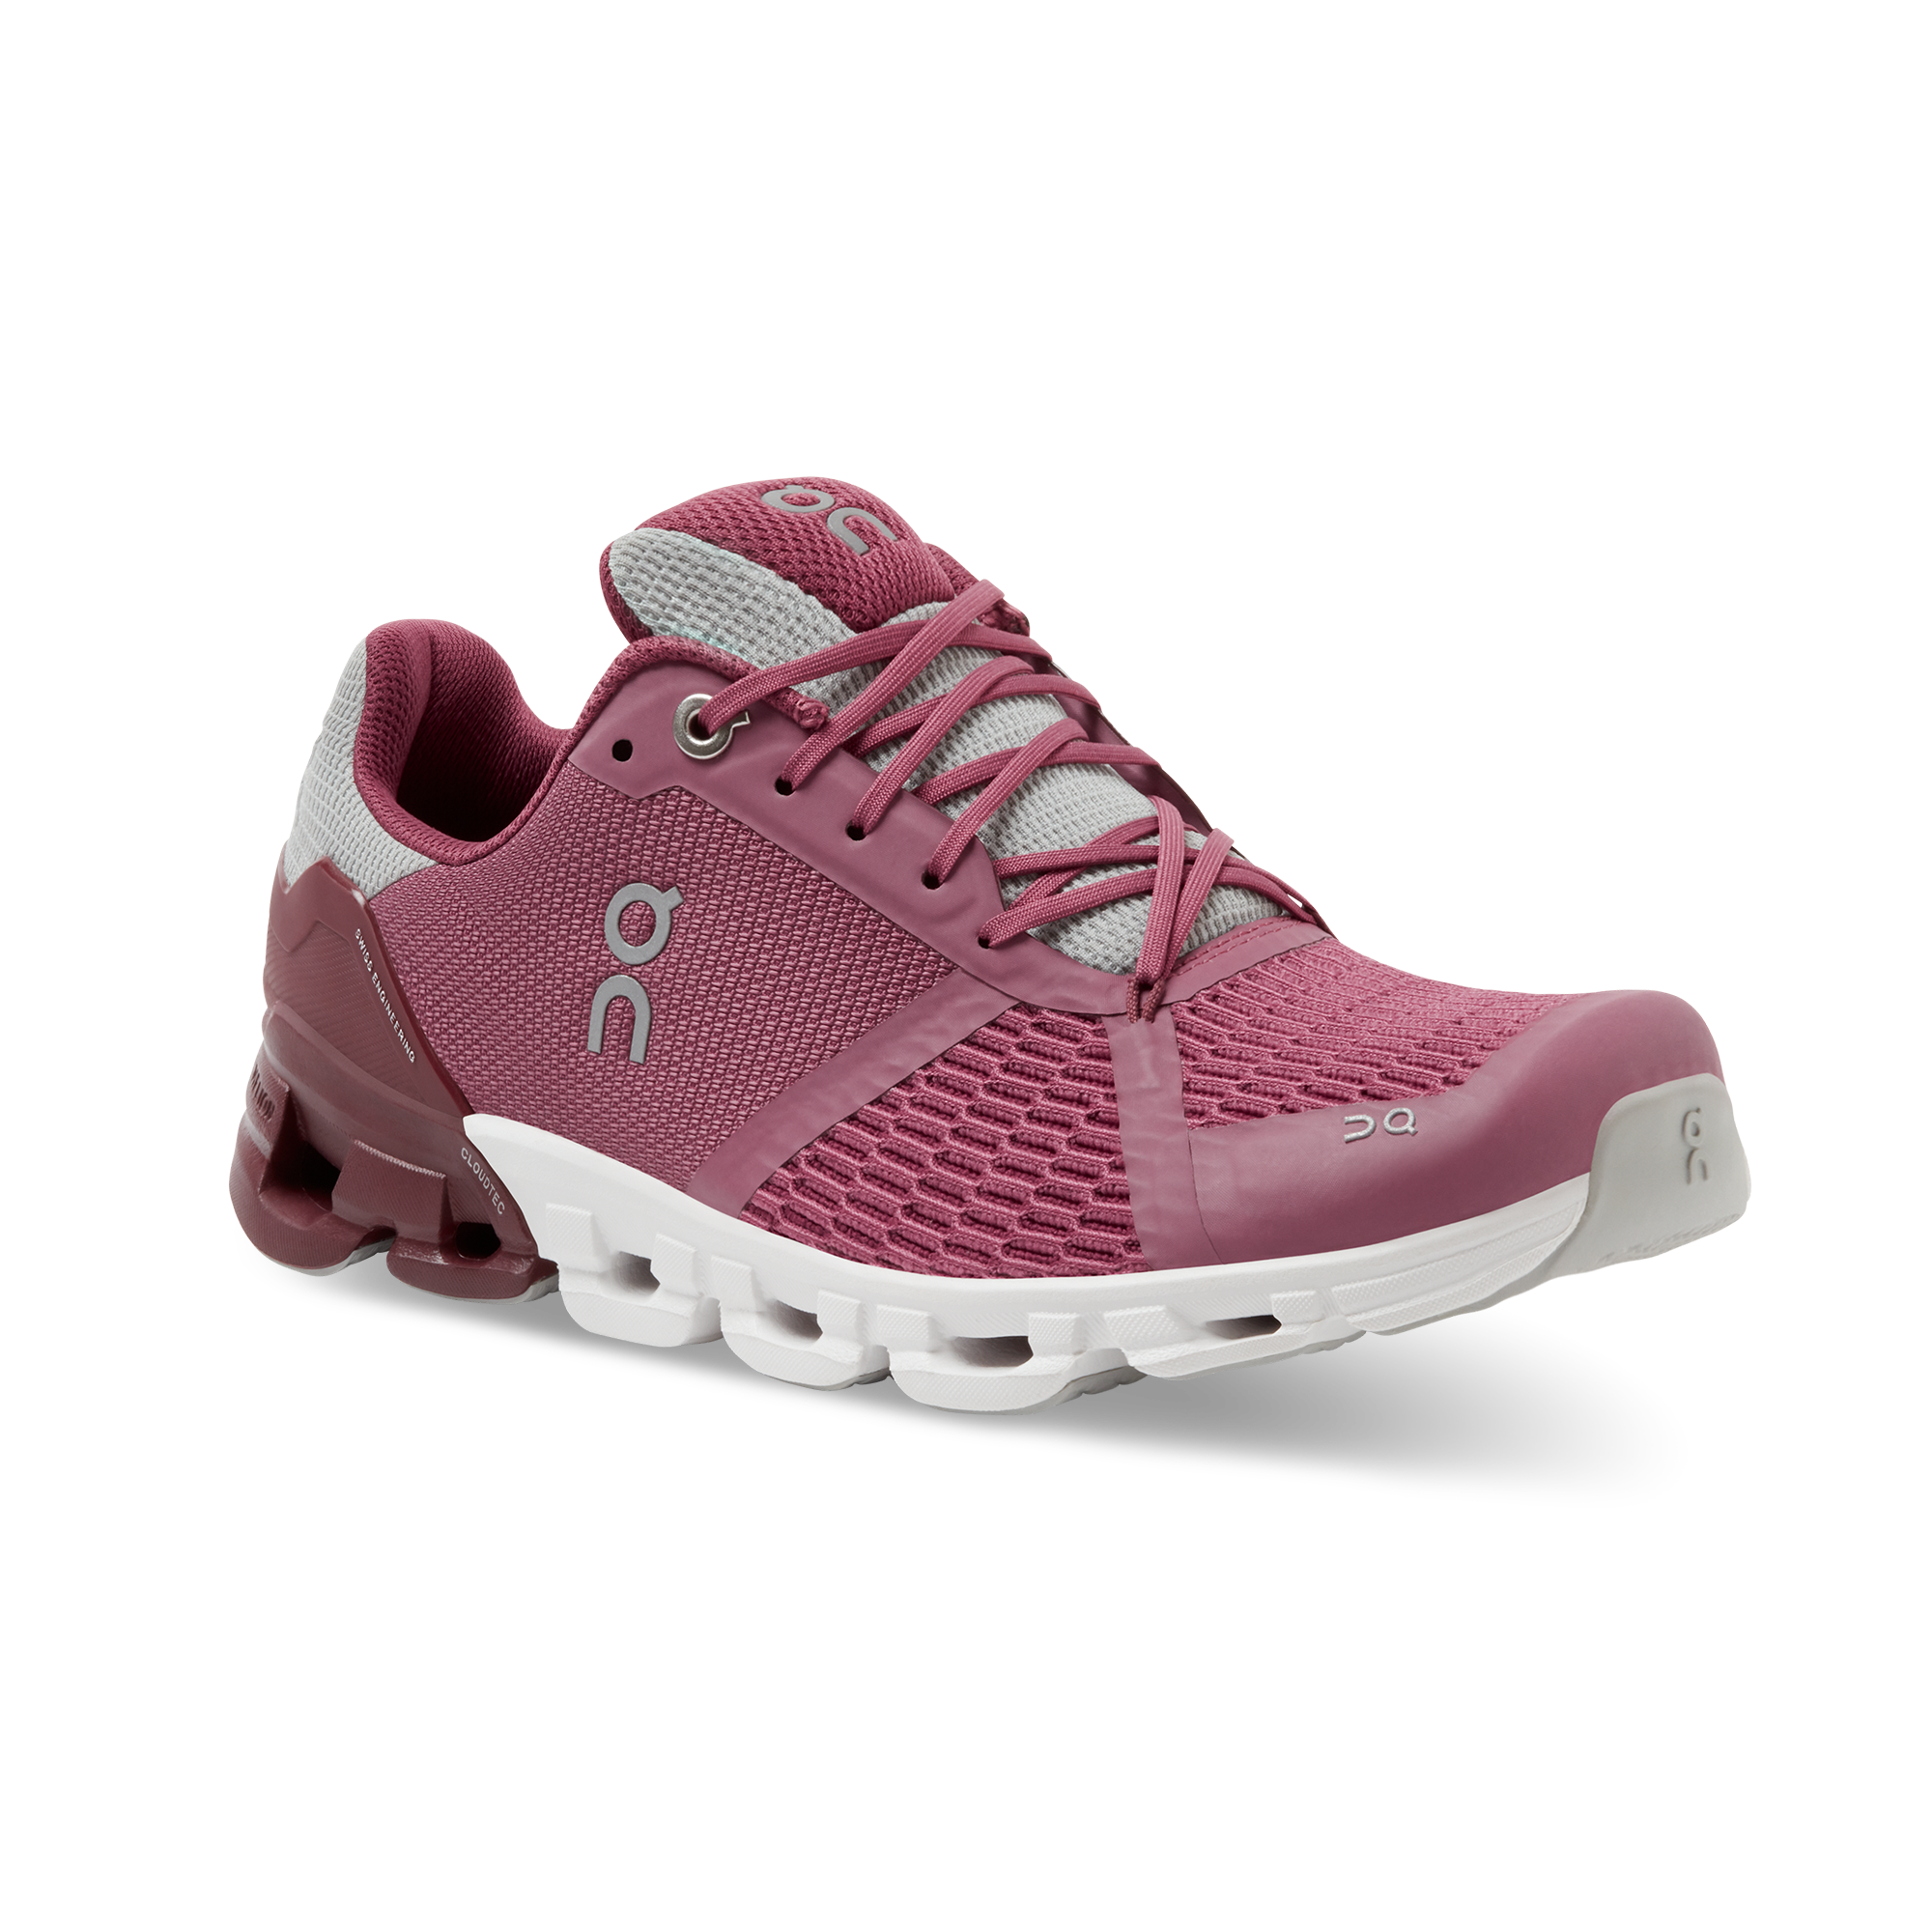 Cloudflyer: Supportive Running Shoe